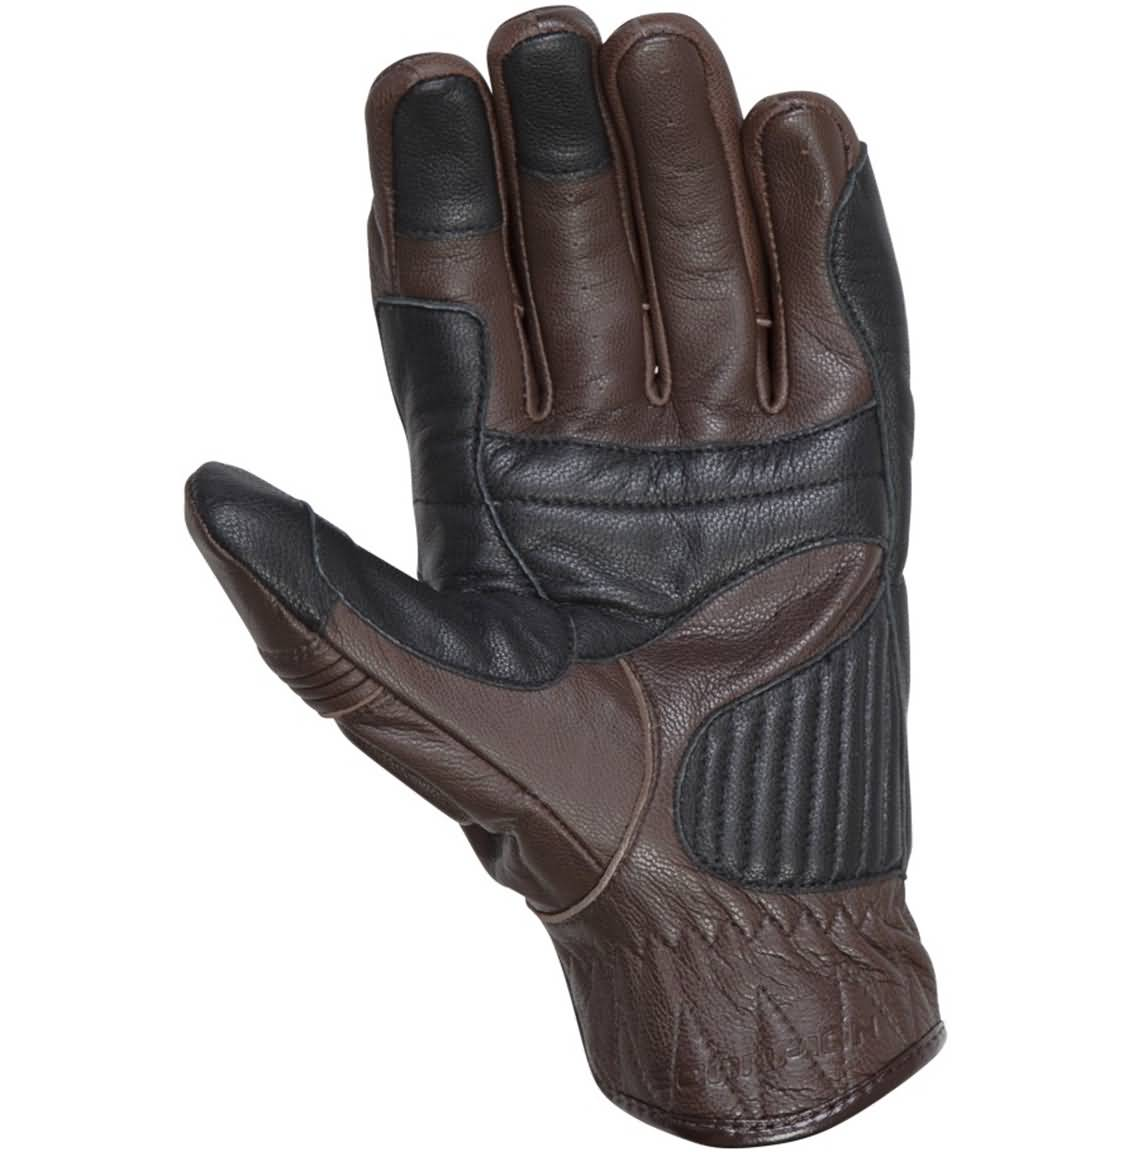 Scorpion 2017 | Premium Street Motorcycle Gloves Collection